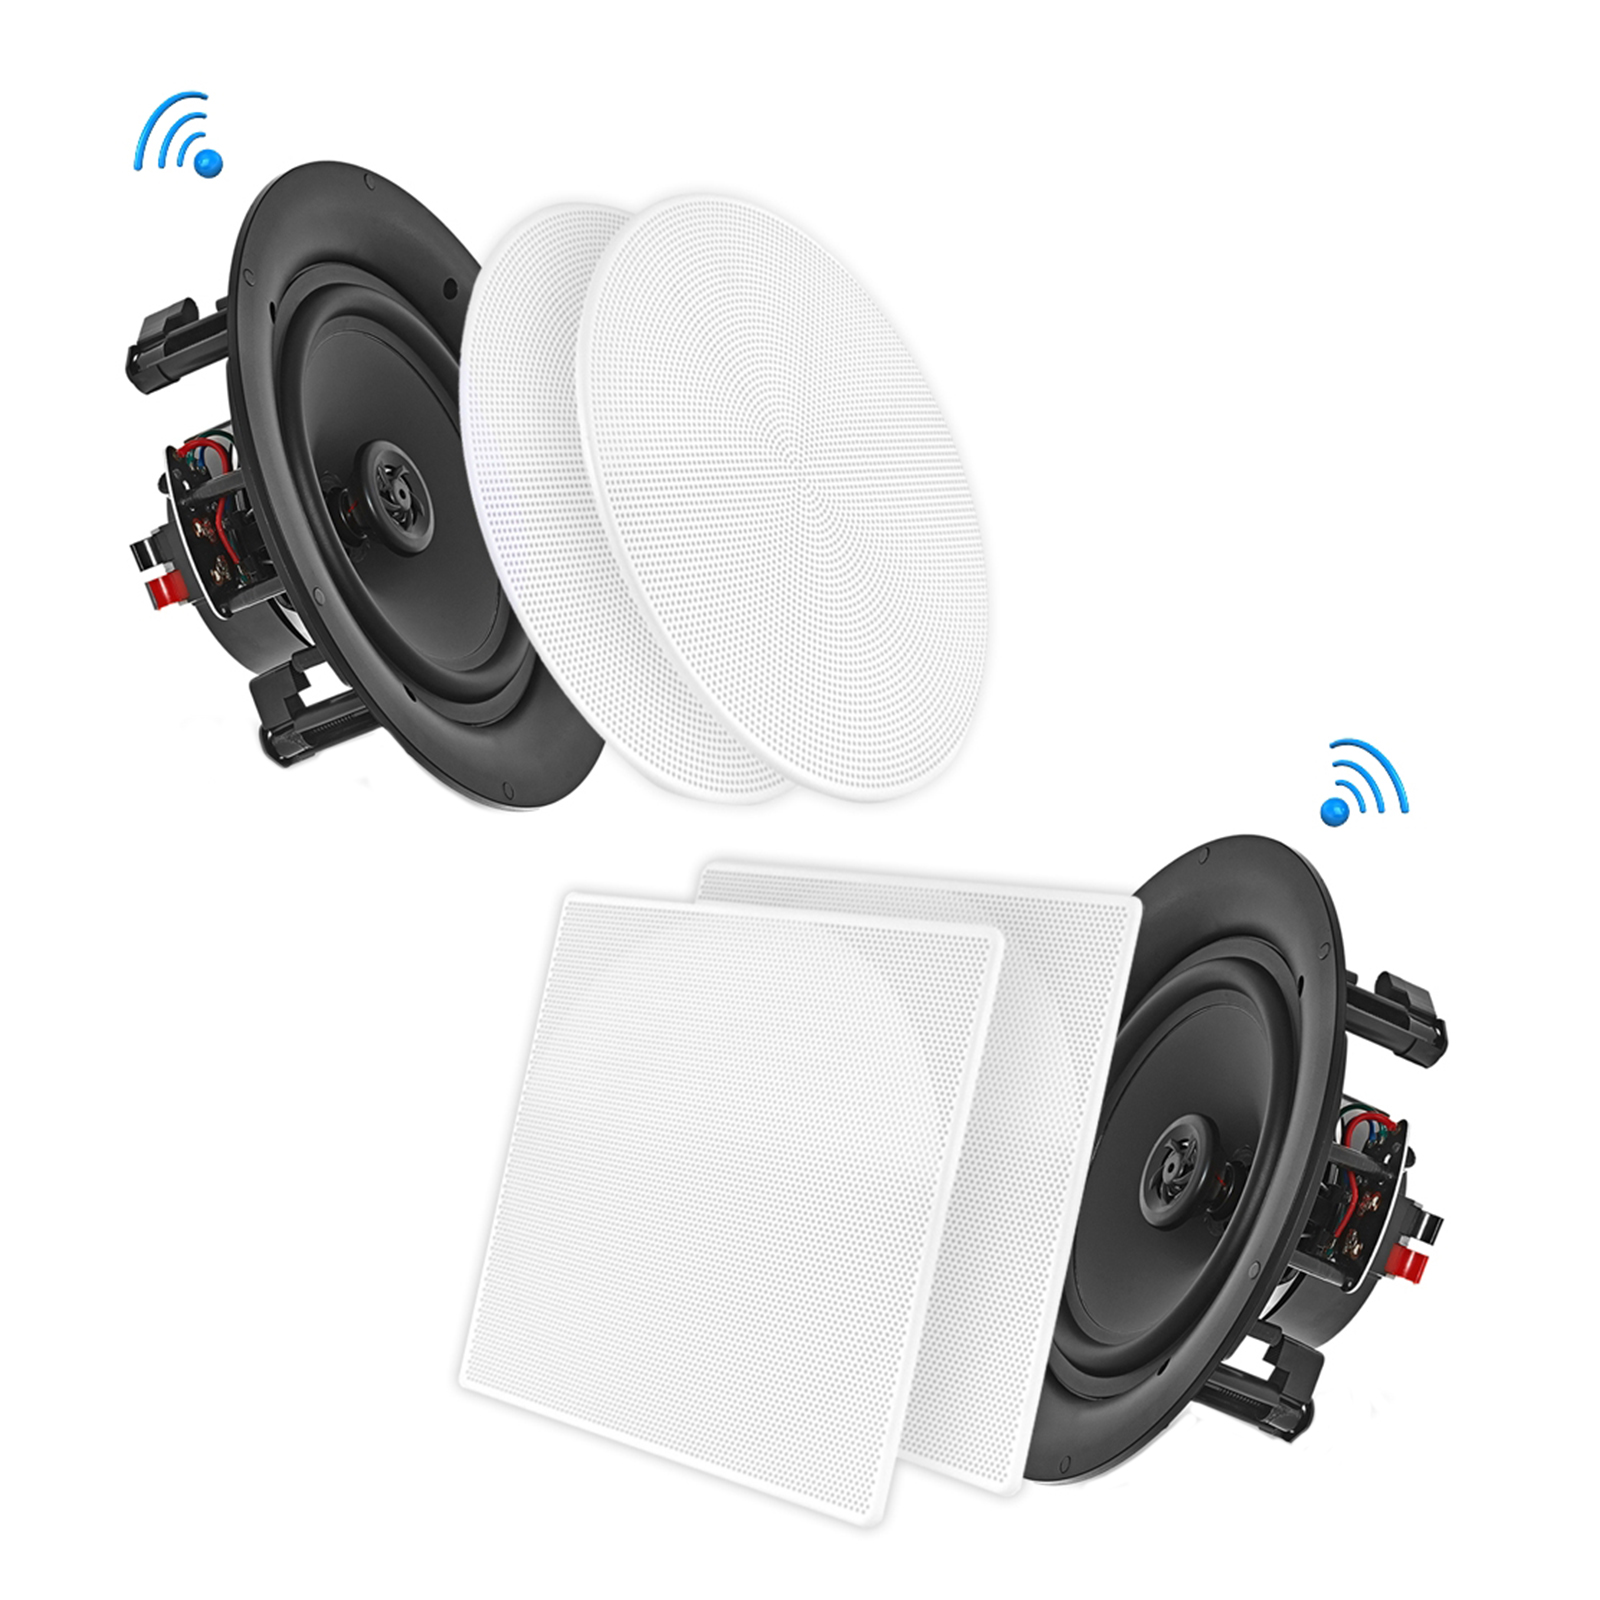 "10"" BT Ceiling / Wall Speaker Kit, (4) Flush Mount 2-Way Home Speakers, 300 Watt (4 Speakers)"